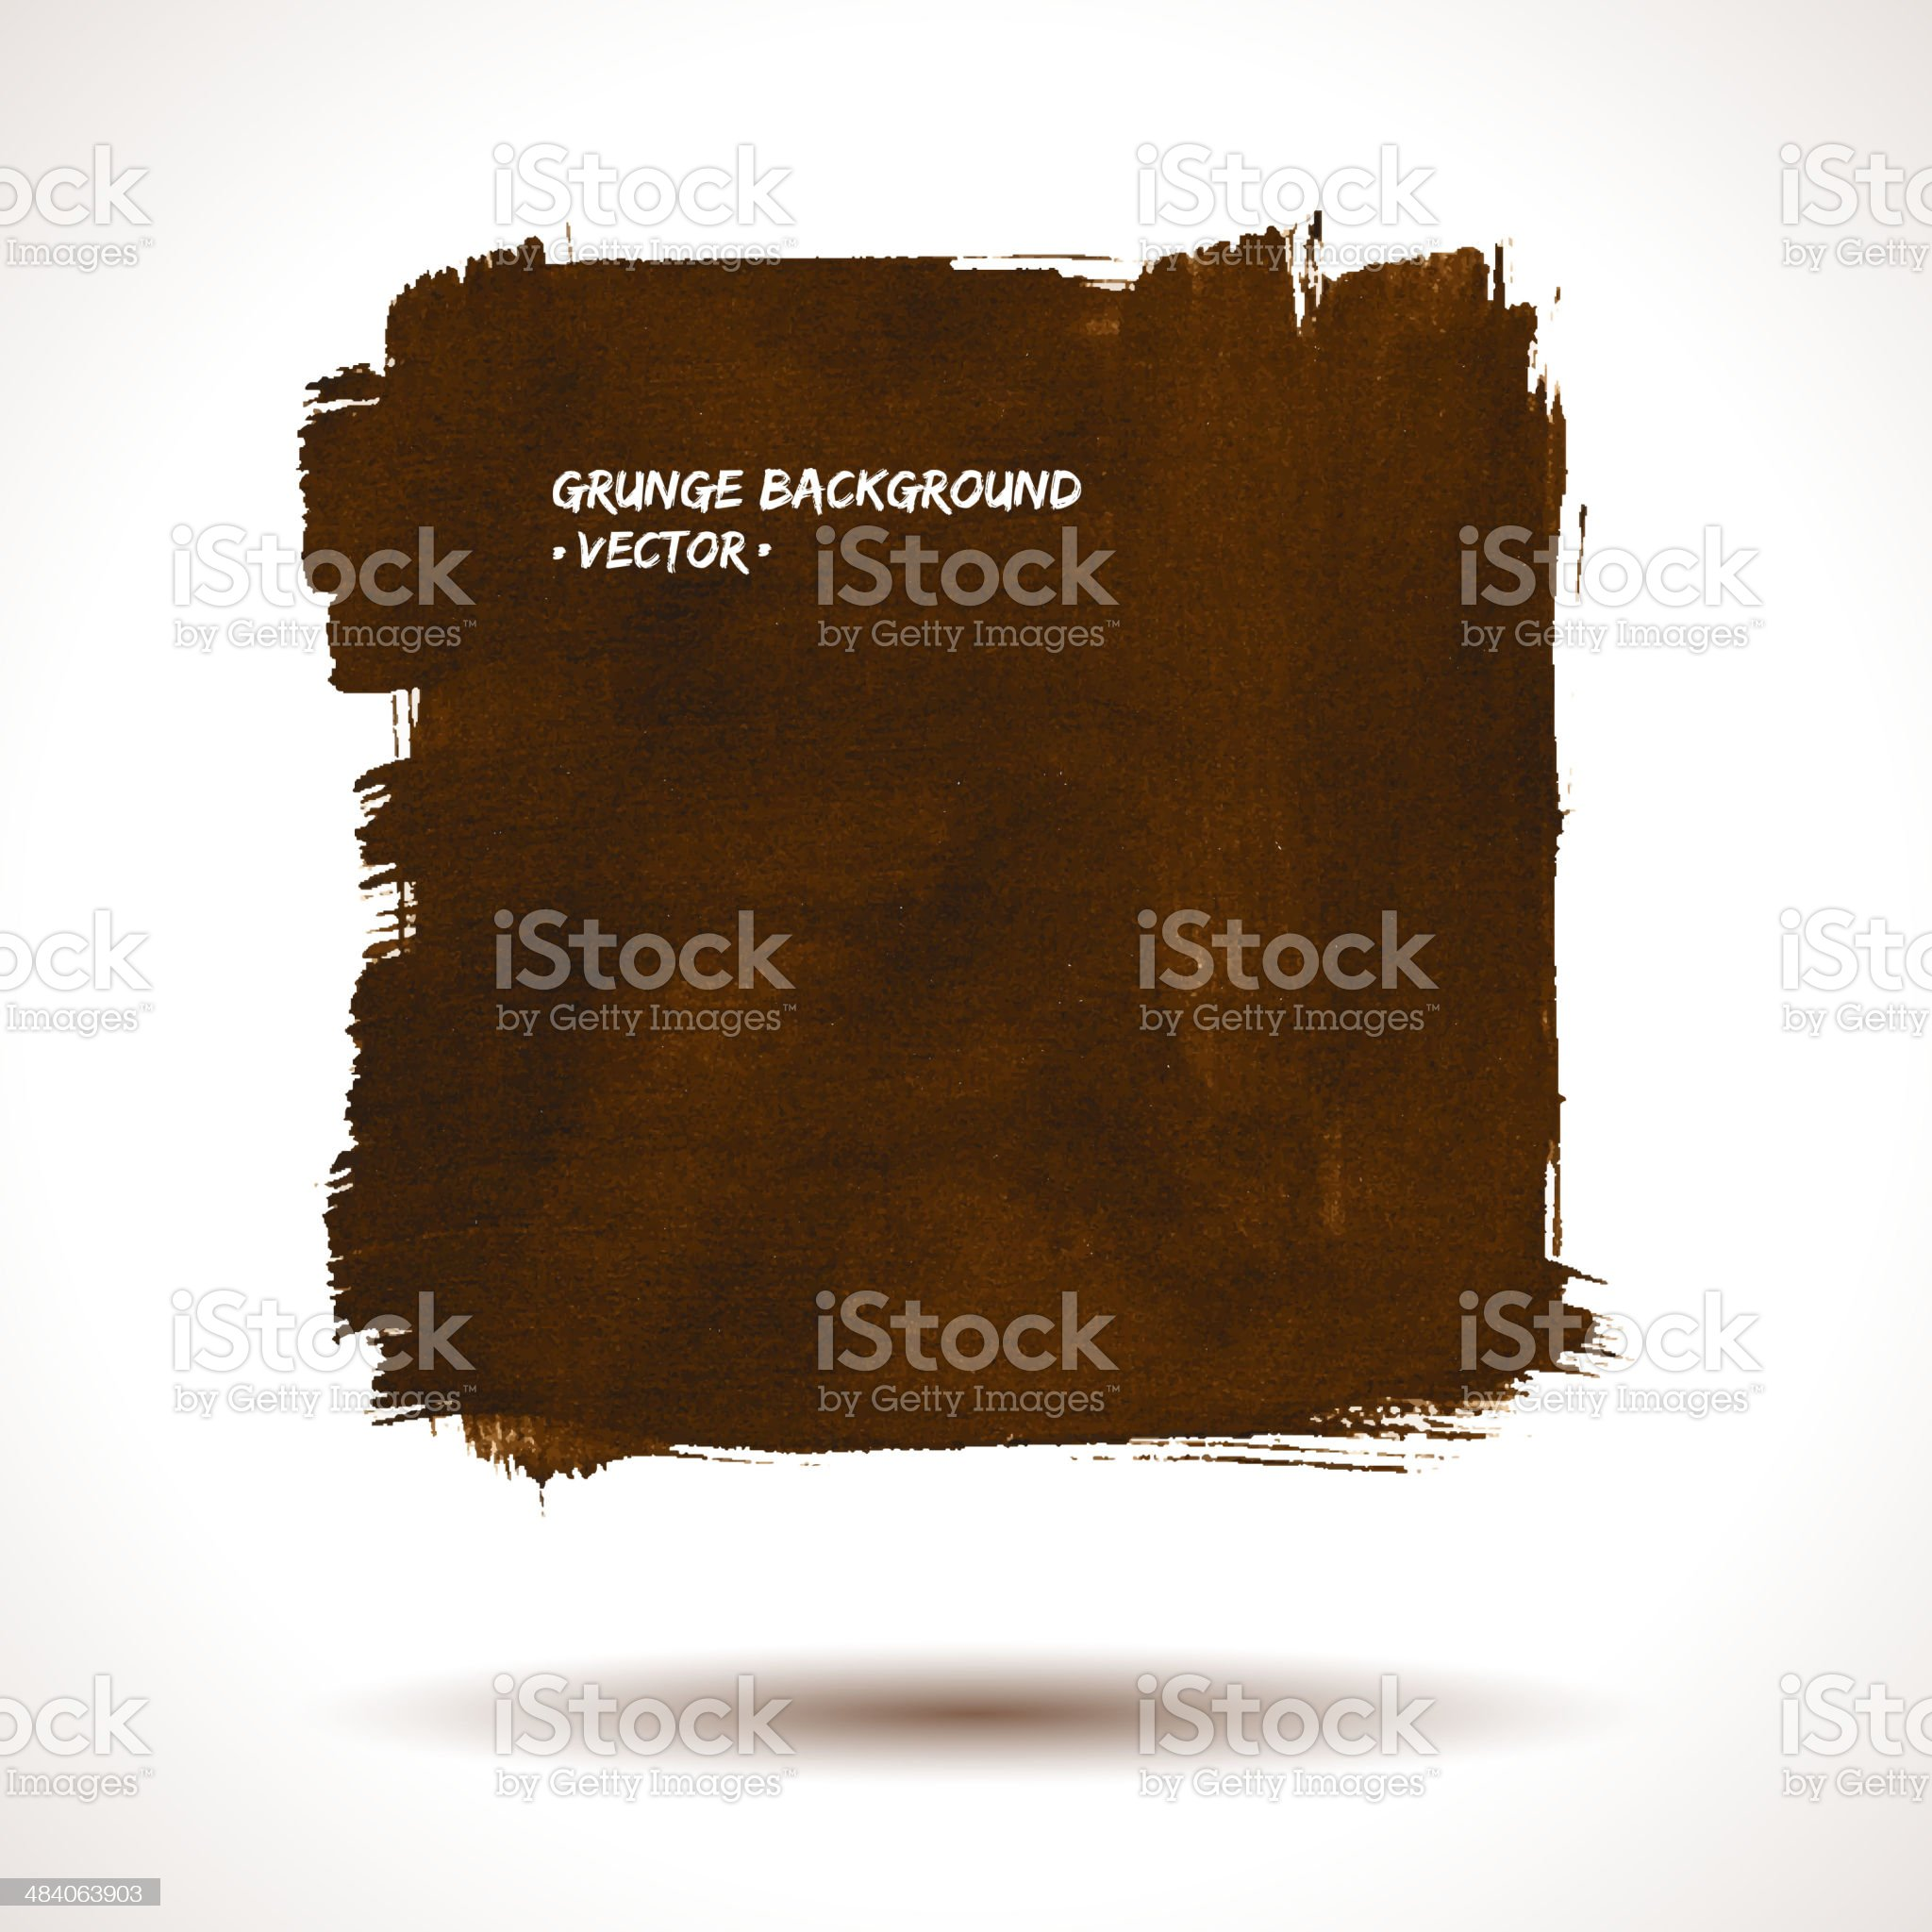 Grunge vector brown background royalty-free stock vector art